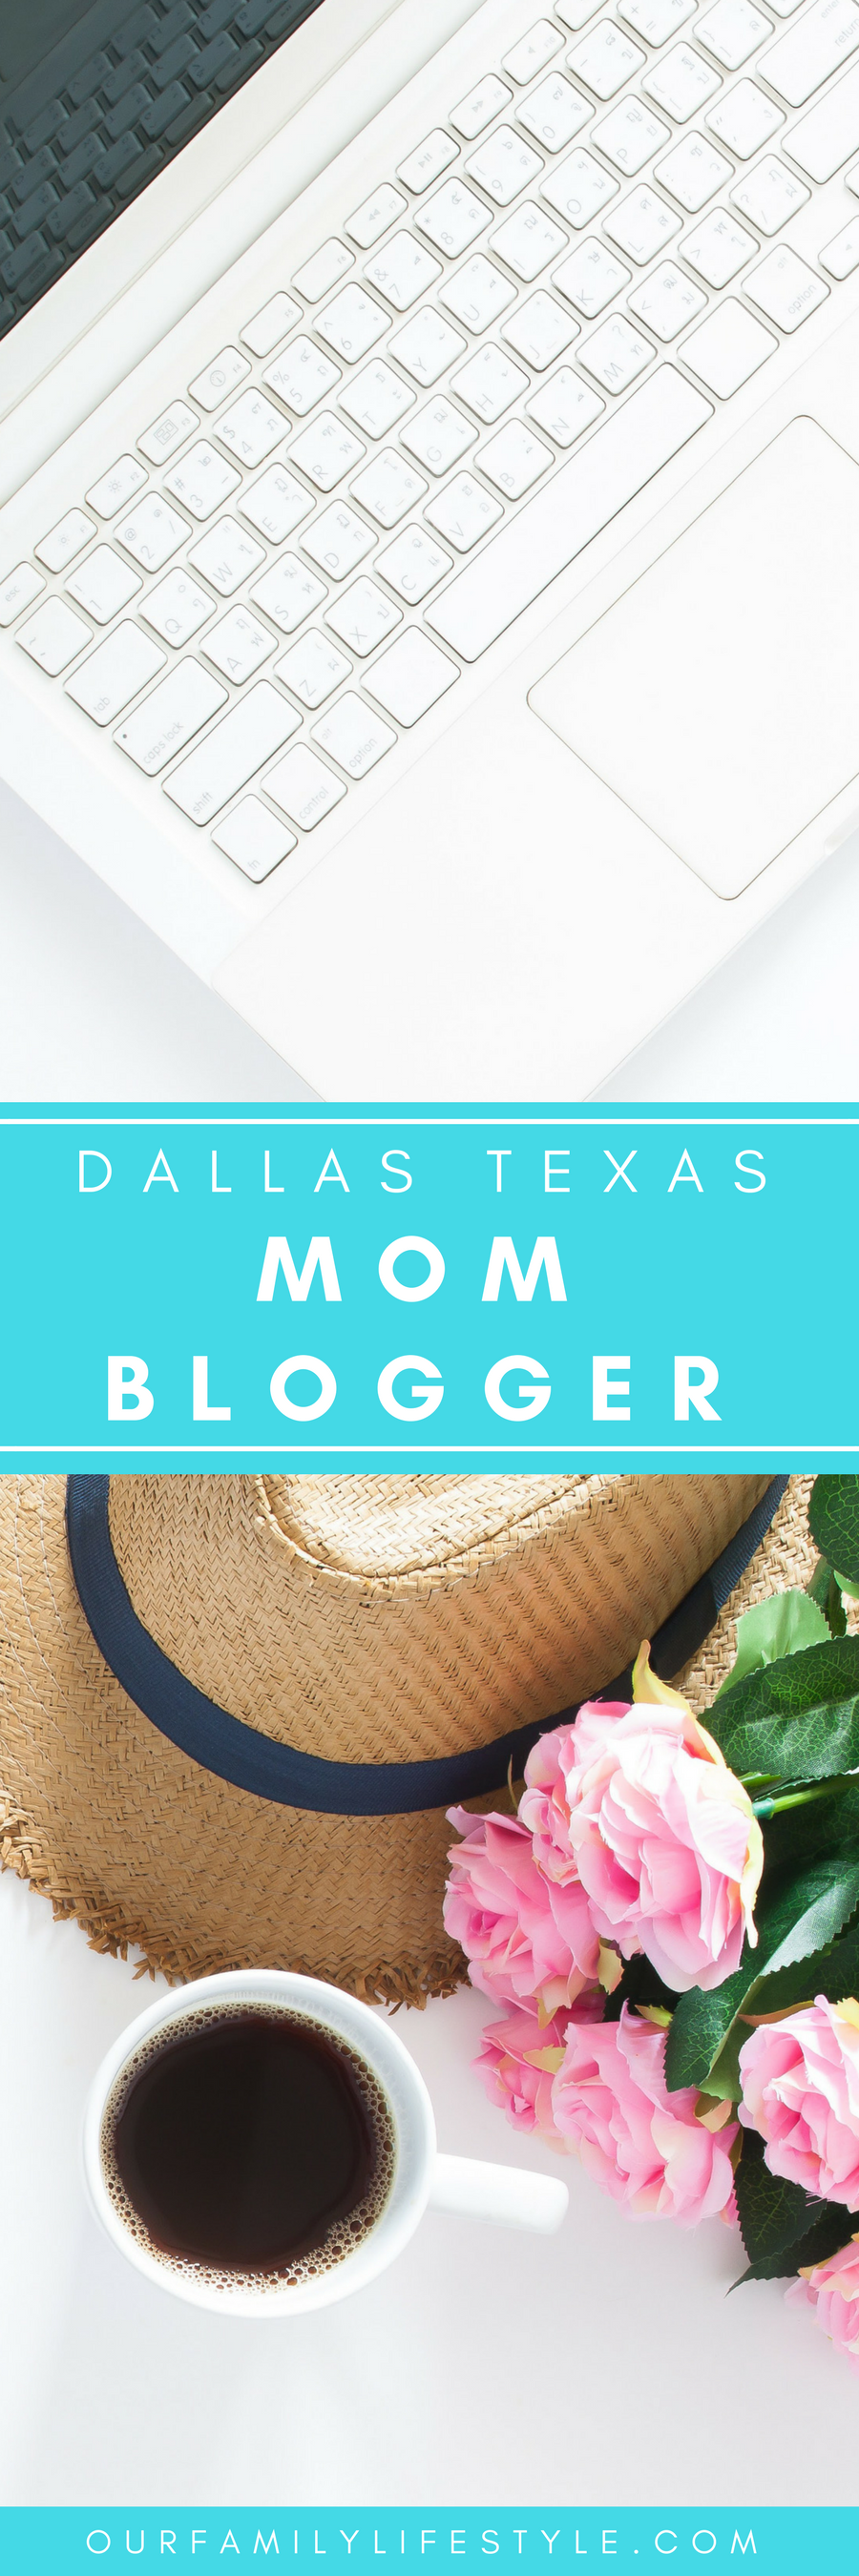 Our Family Lifestyle is a Dallas Mom Blog featuring stories that focus on parenting, how-to, and family travel from a Dallas Mom's perspective.